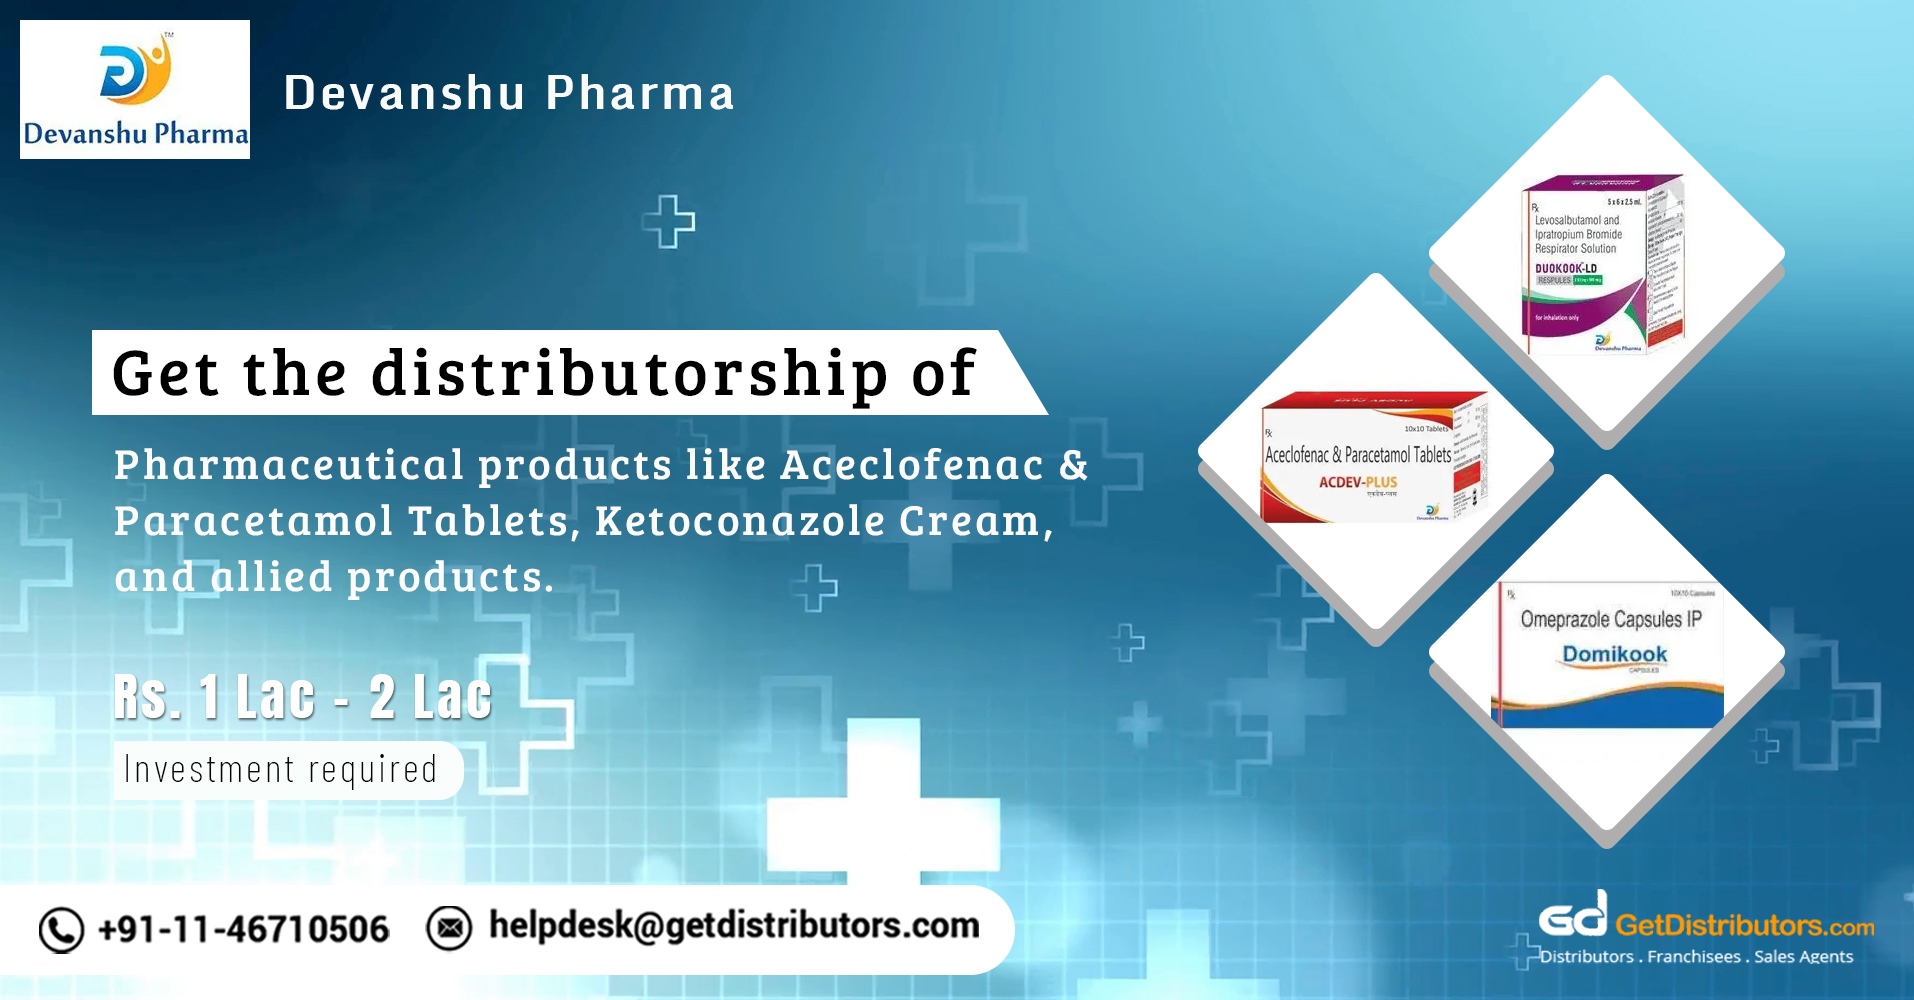 Offering a wide range of pharmaceutical products for distribution